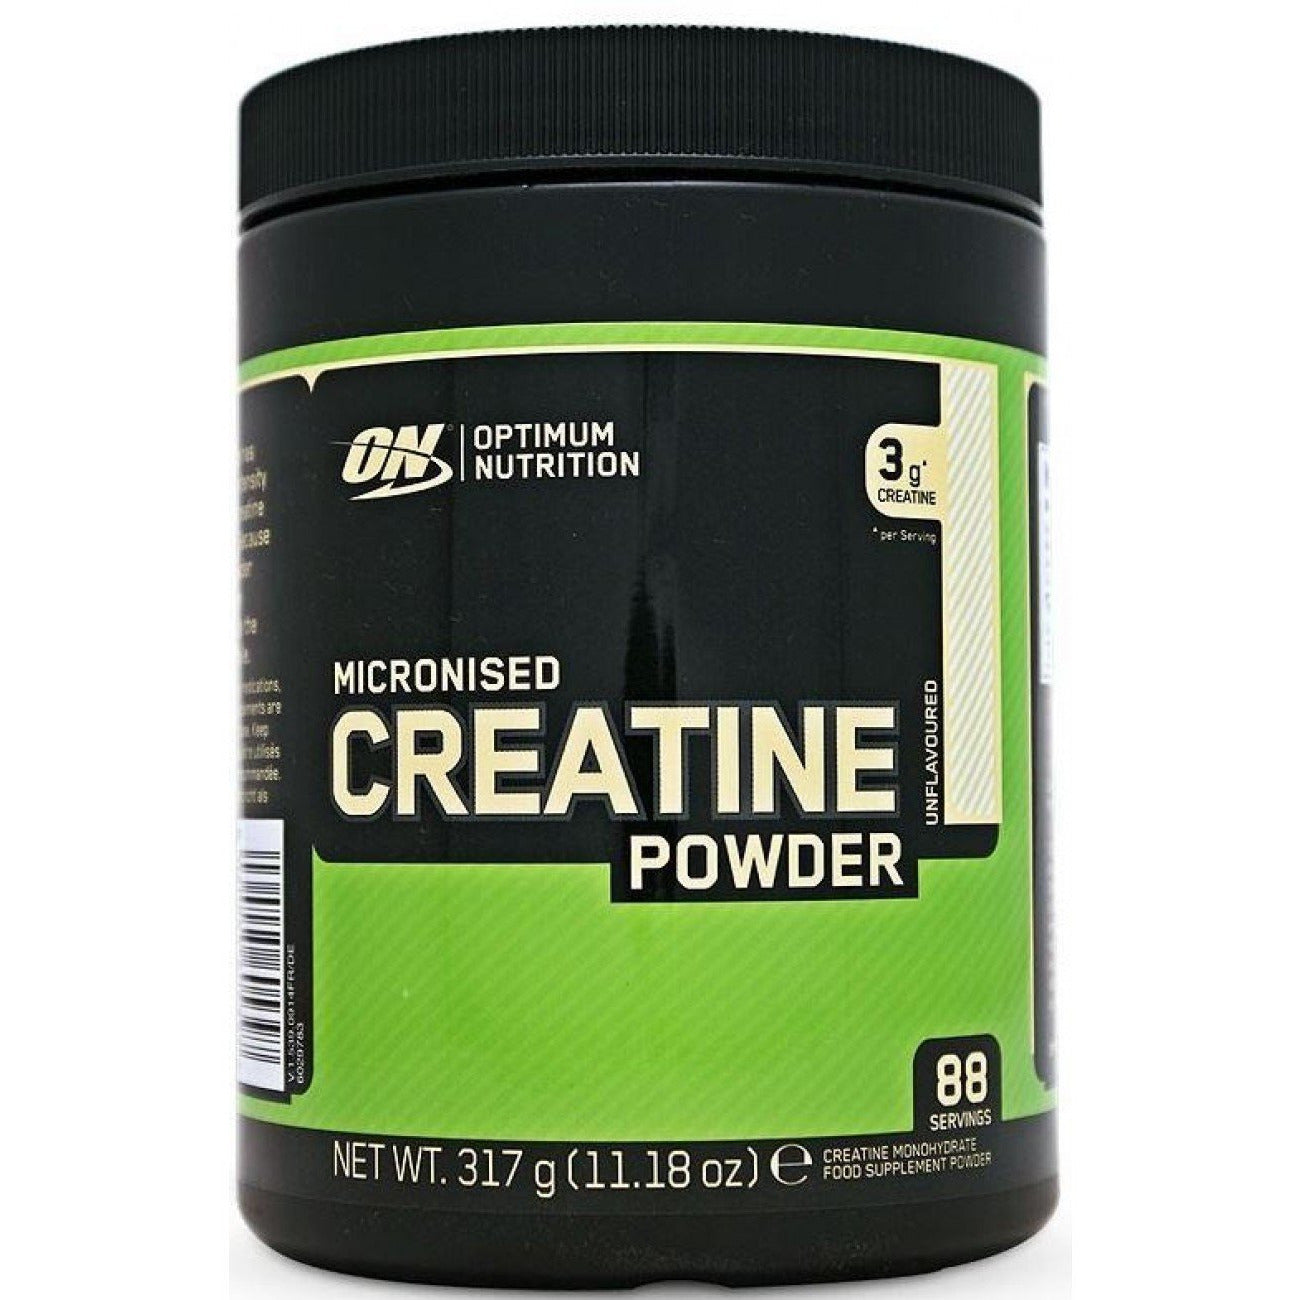 Optimum Nutrition Micronised Creatine Powder, Unflavoured Monohydrate Powder